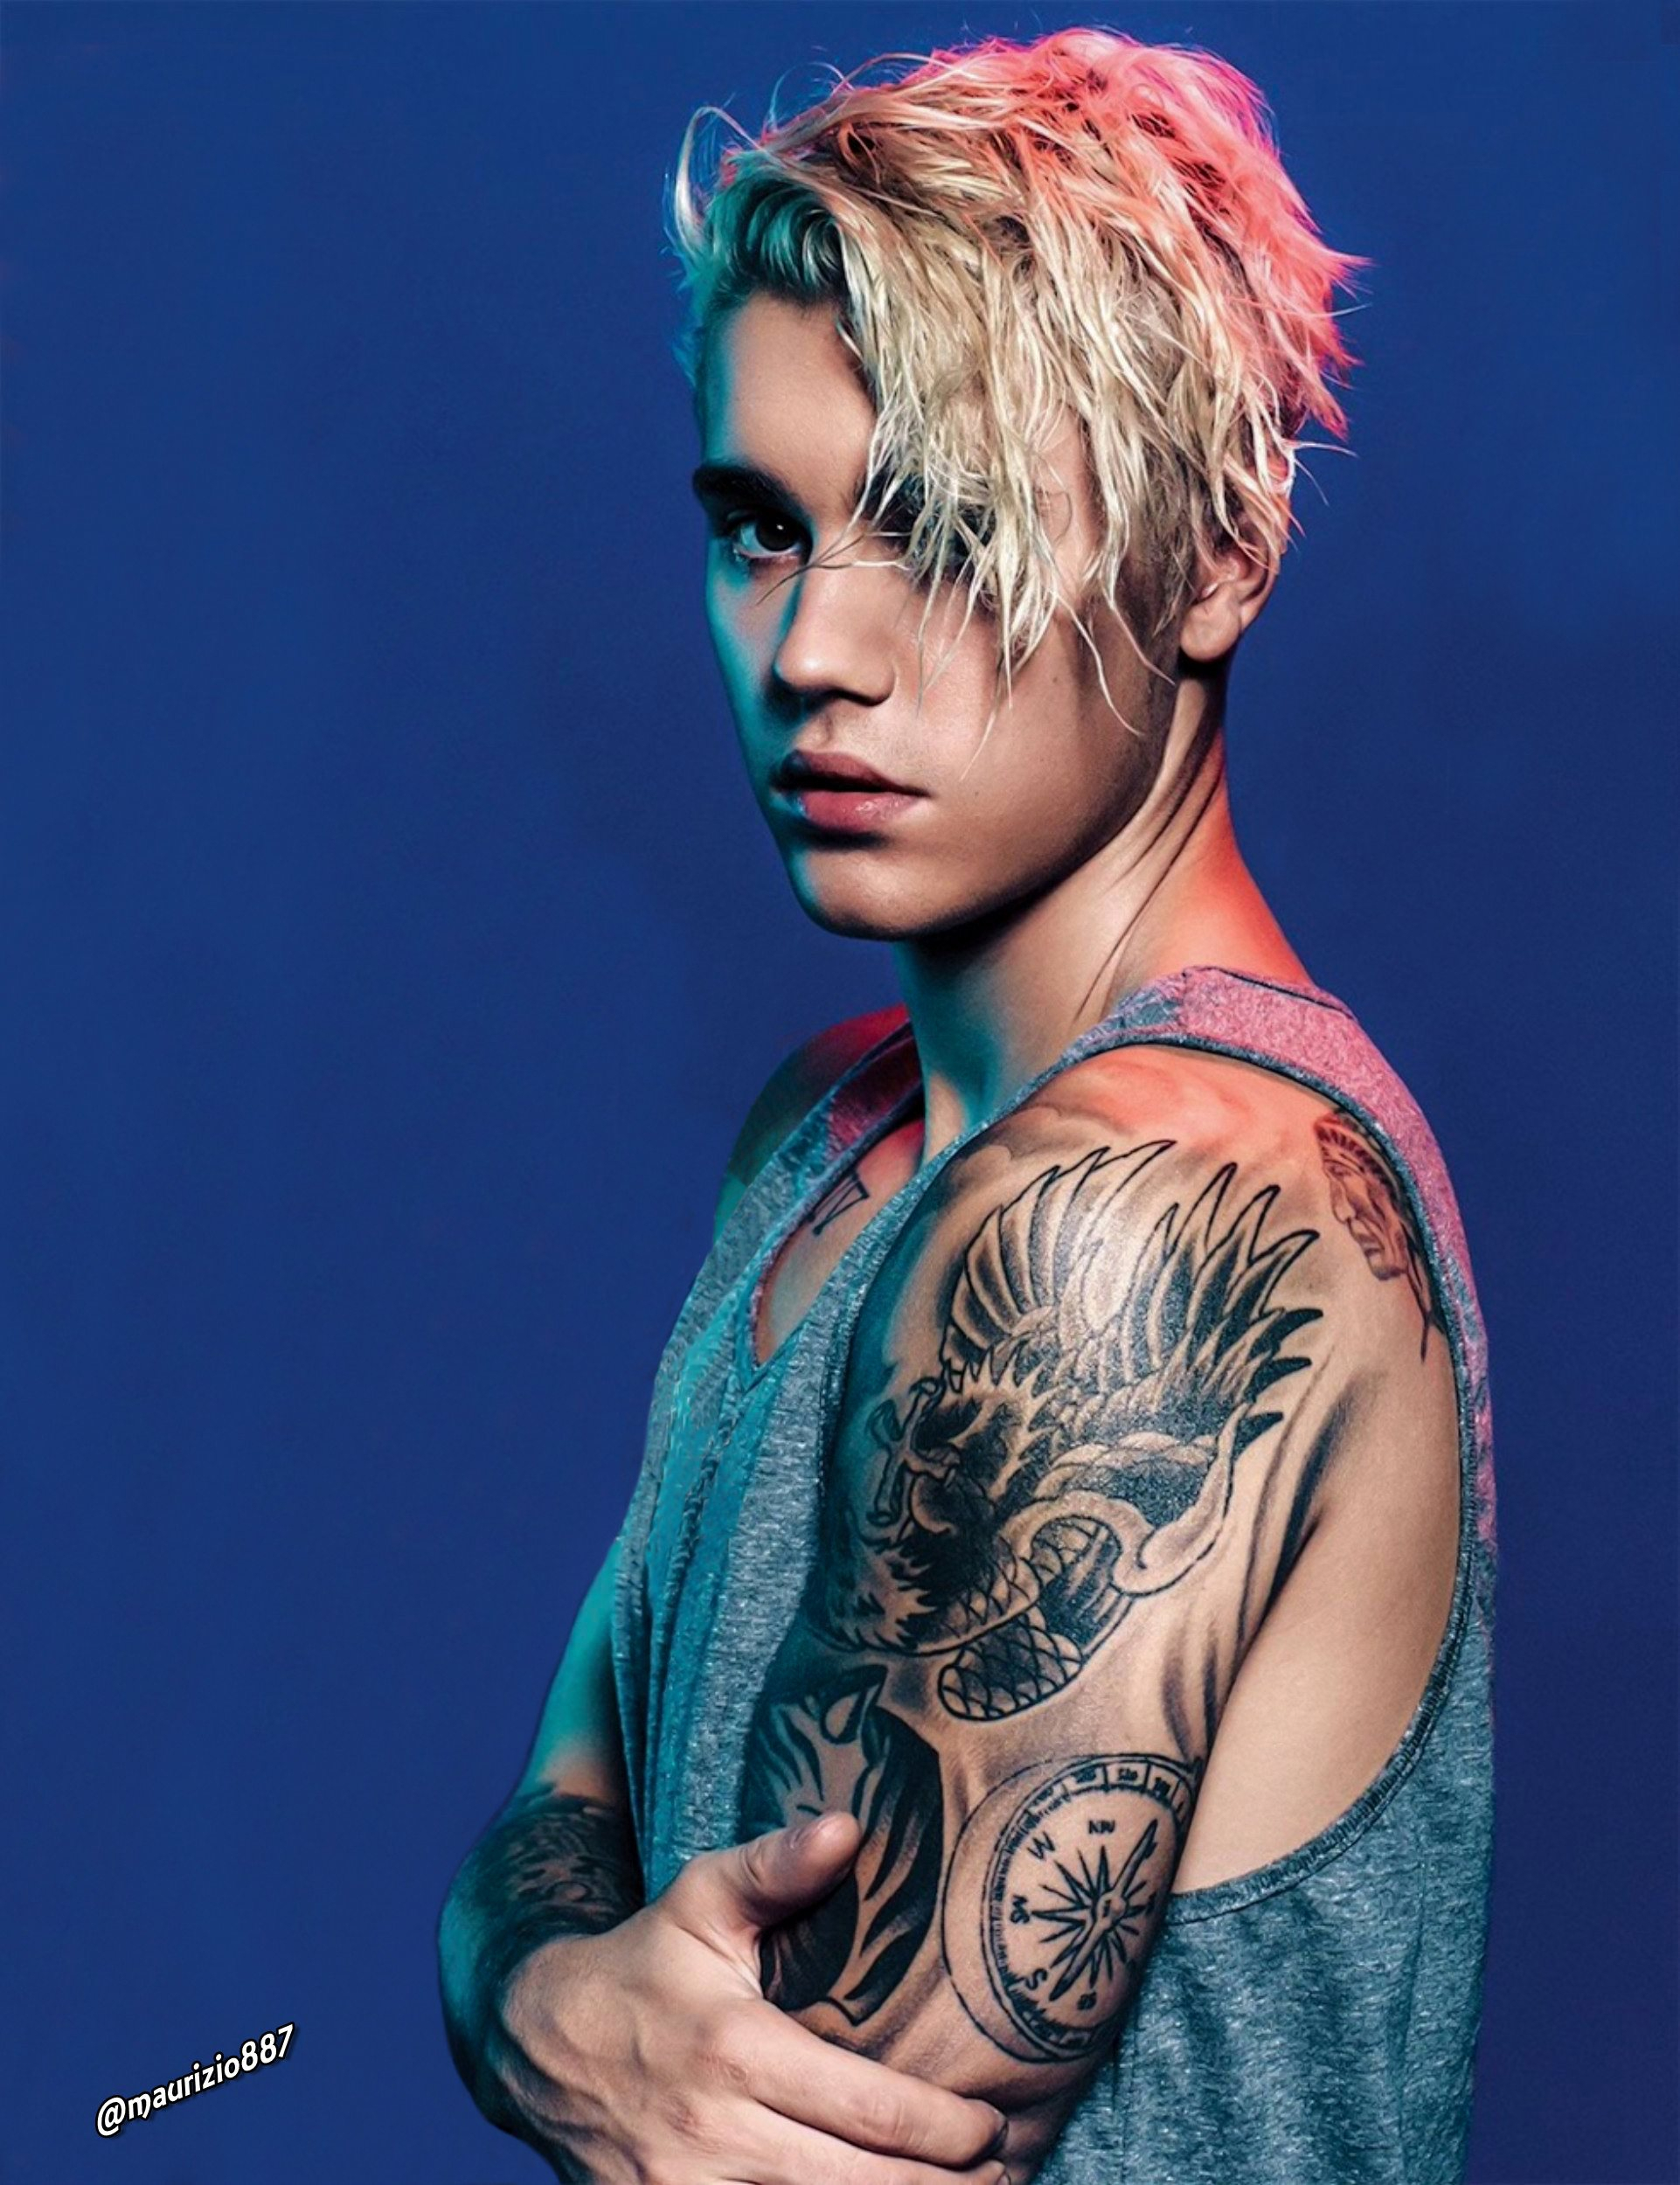 justin bieber images justin bieber, 2015 hd wallpaper and background